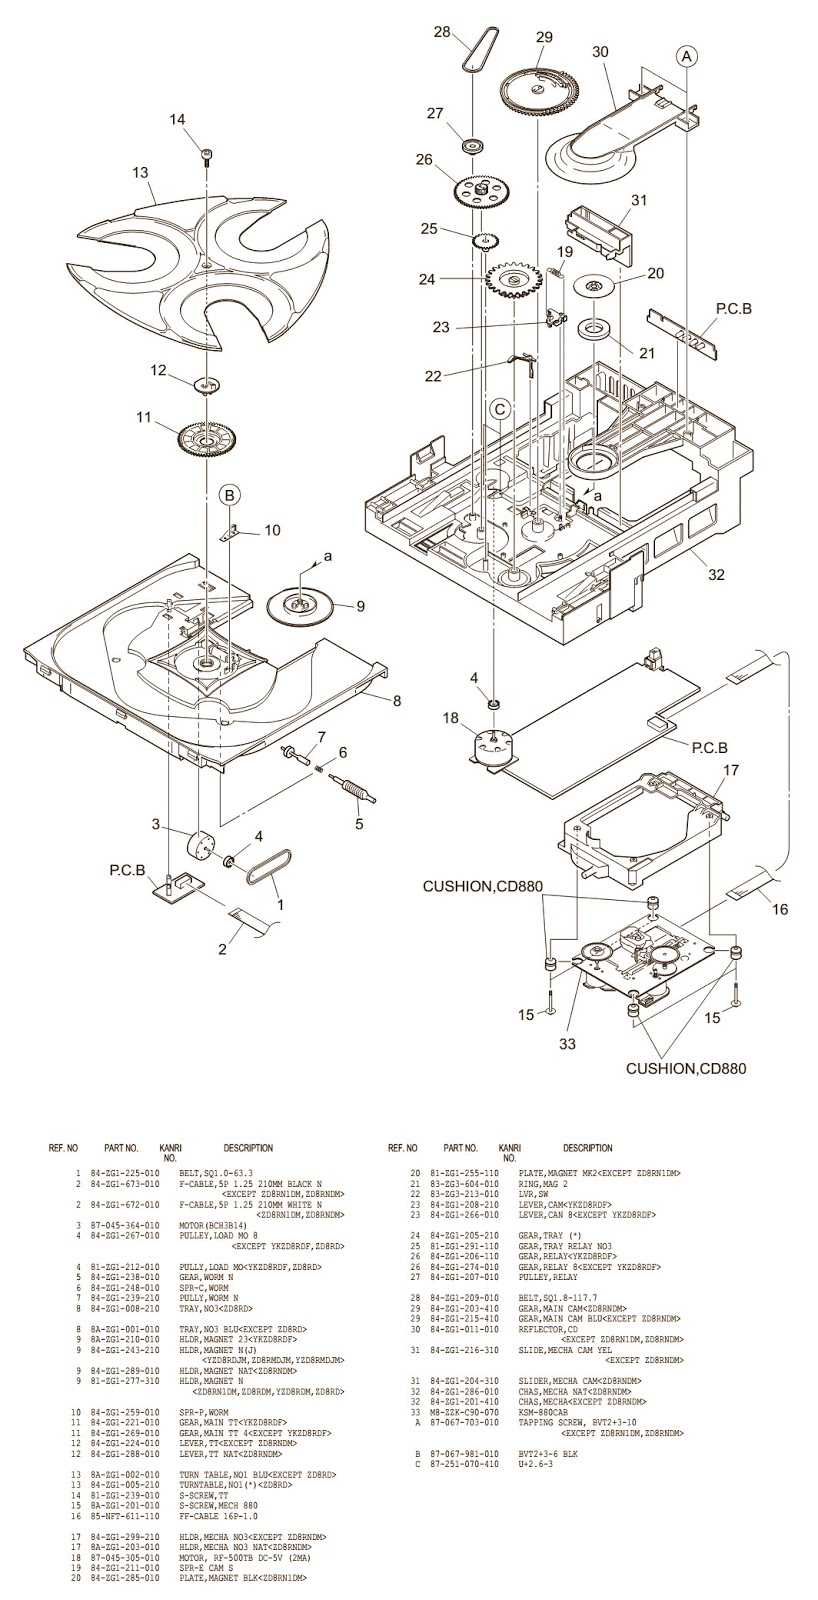 Aiwa Cd Mechanism 3 Changer How To Adjust The Rotating Phase Stereo Wiring Diagram